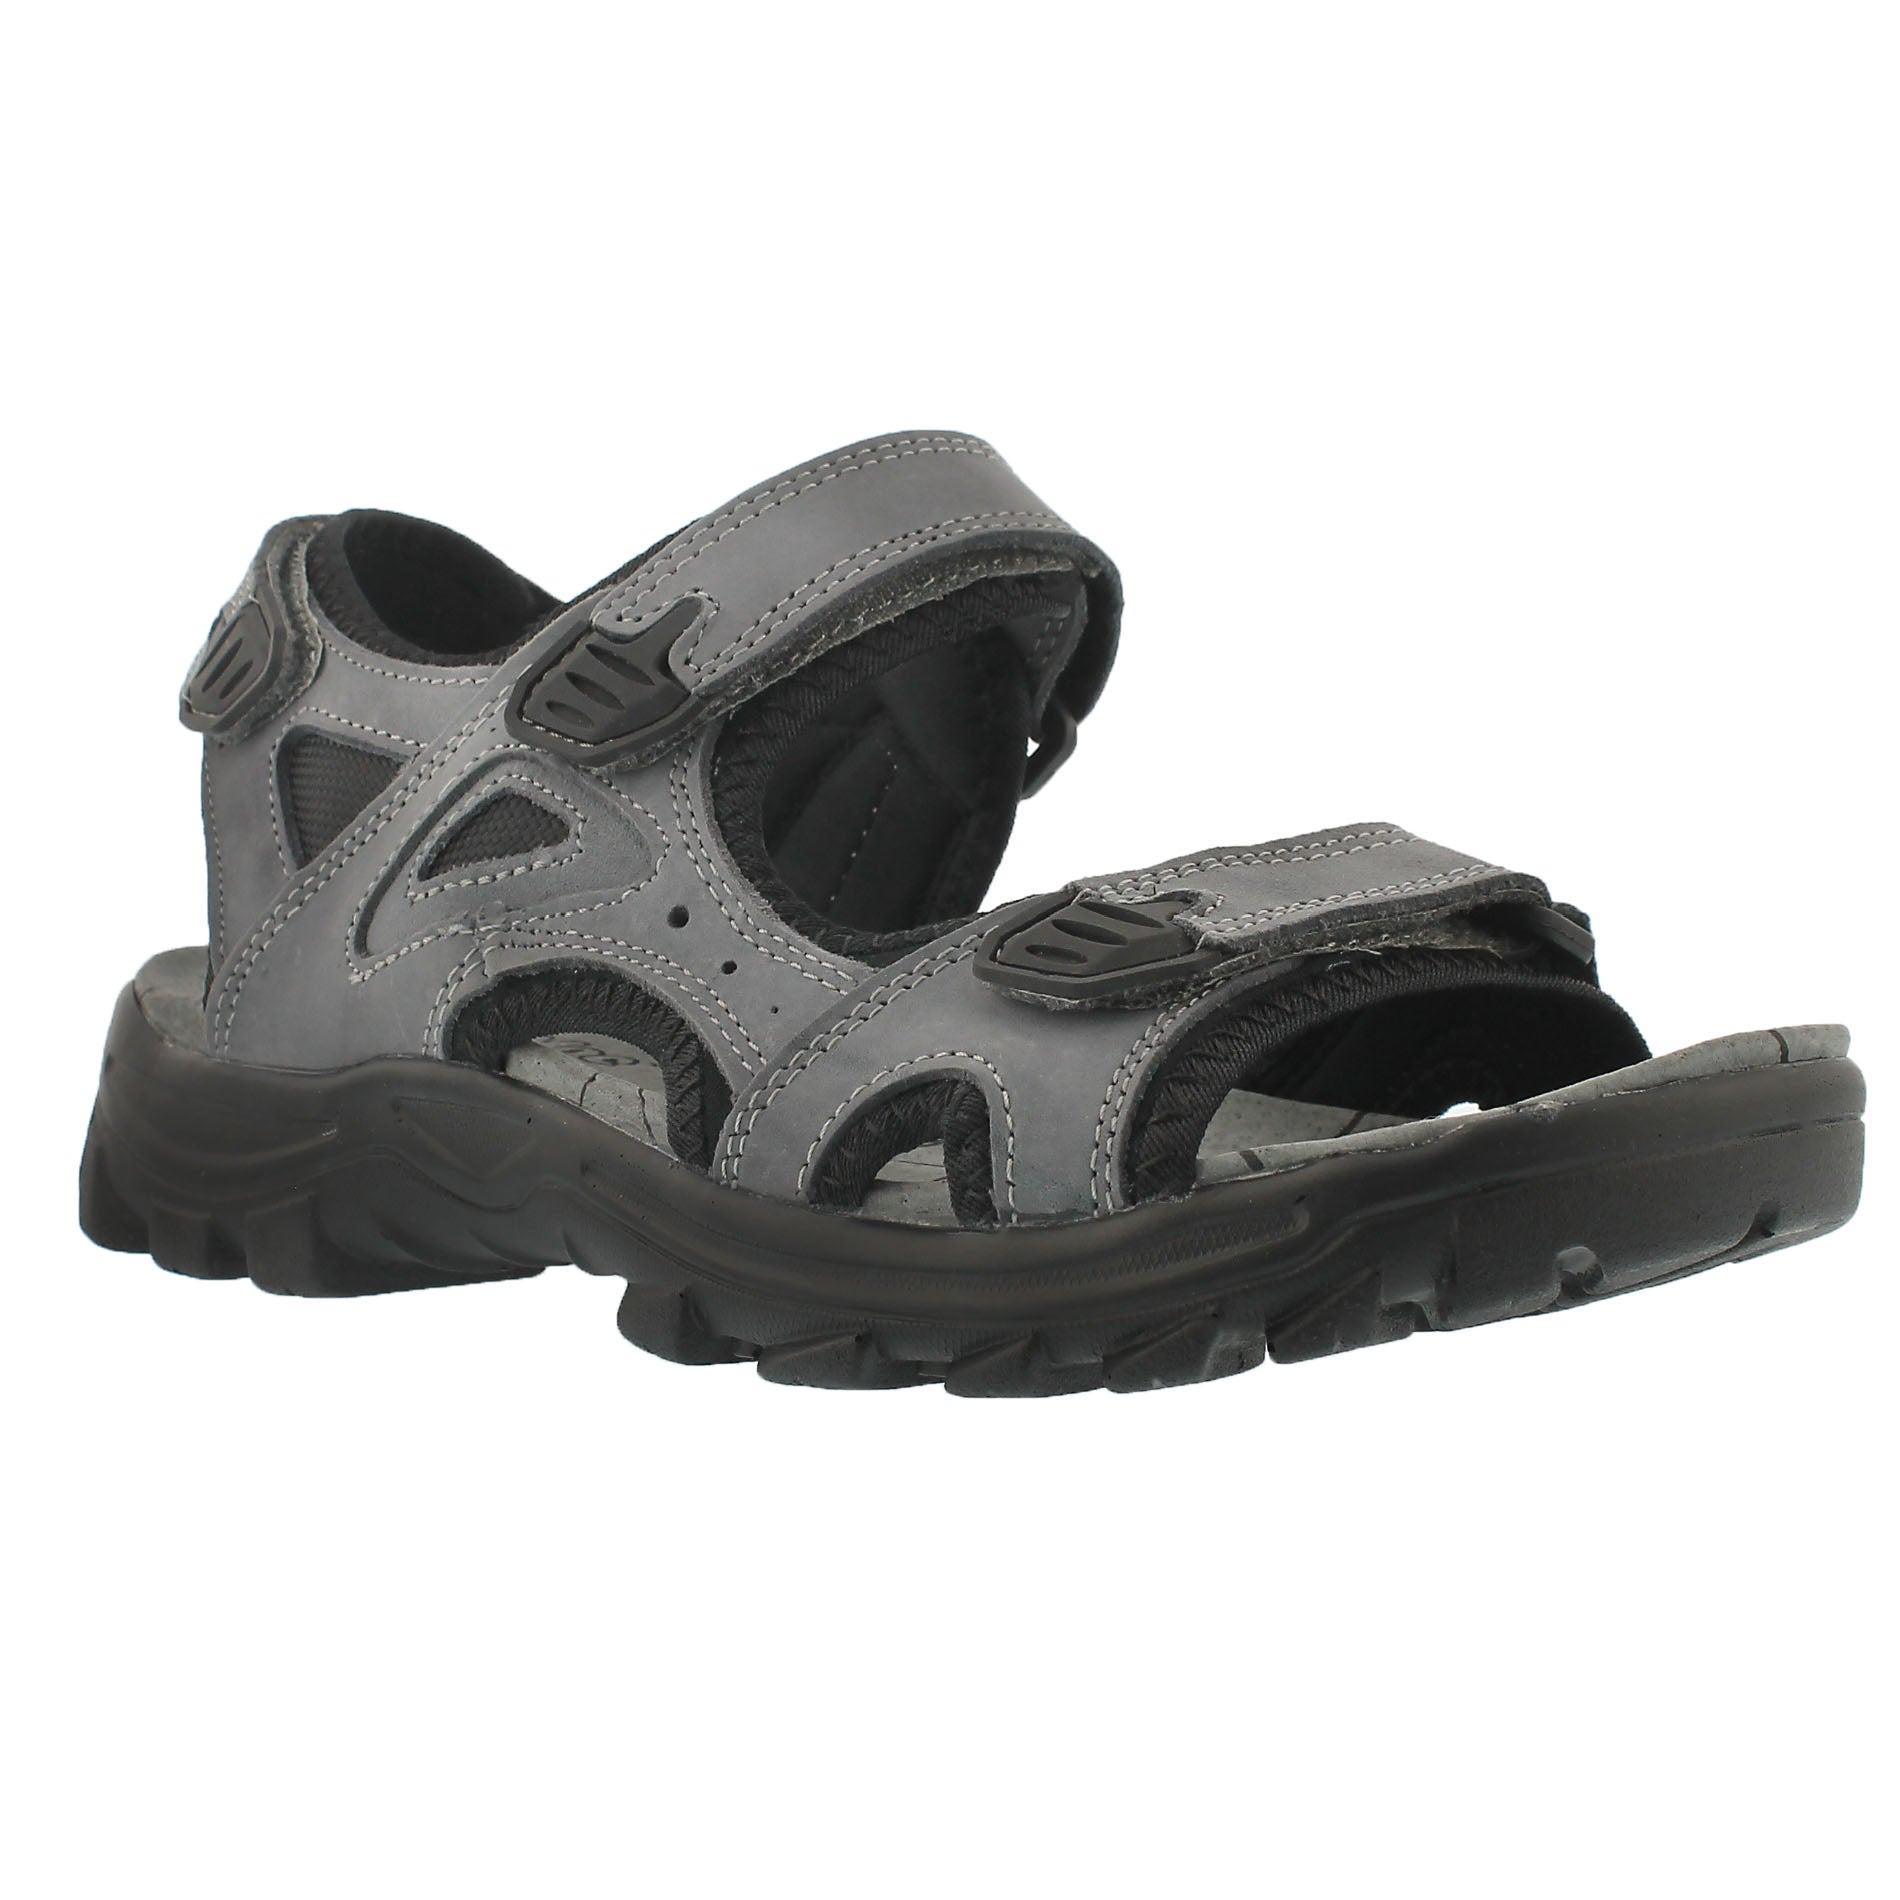 Men's LUKE grey 3 strap sport sandals